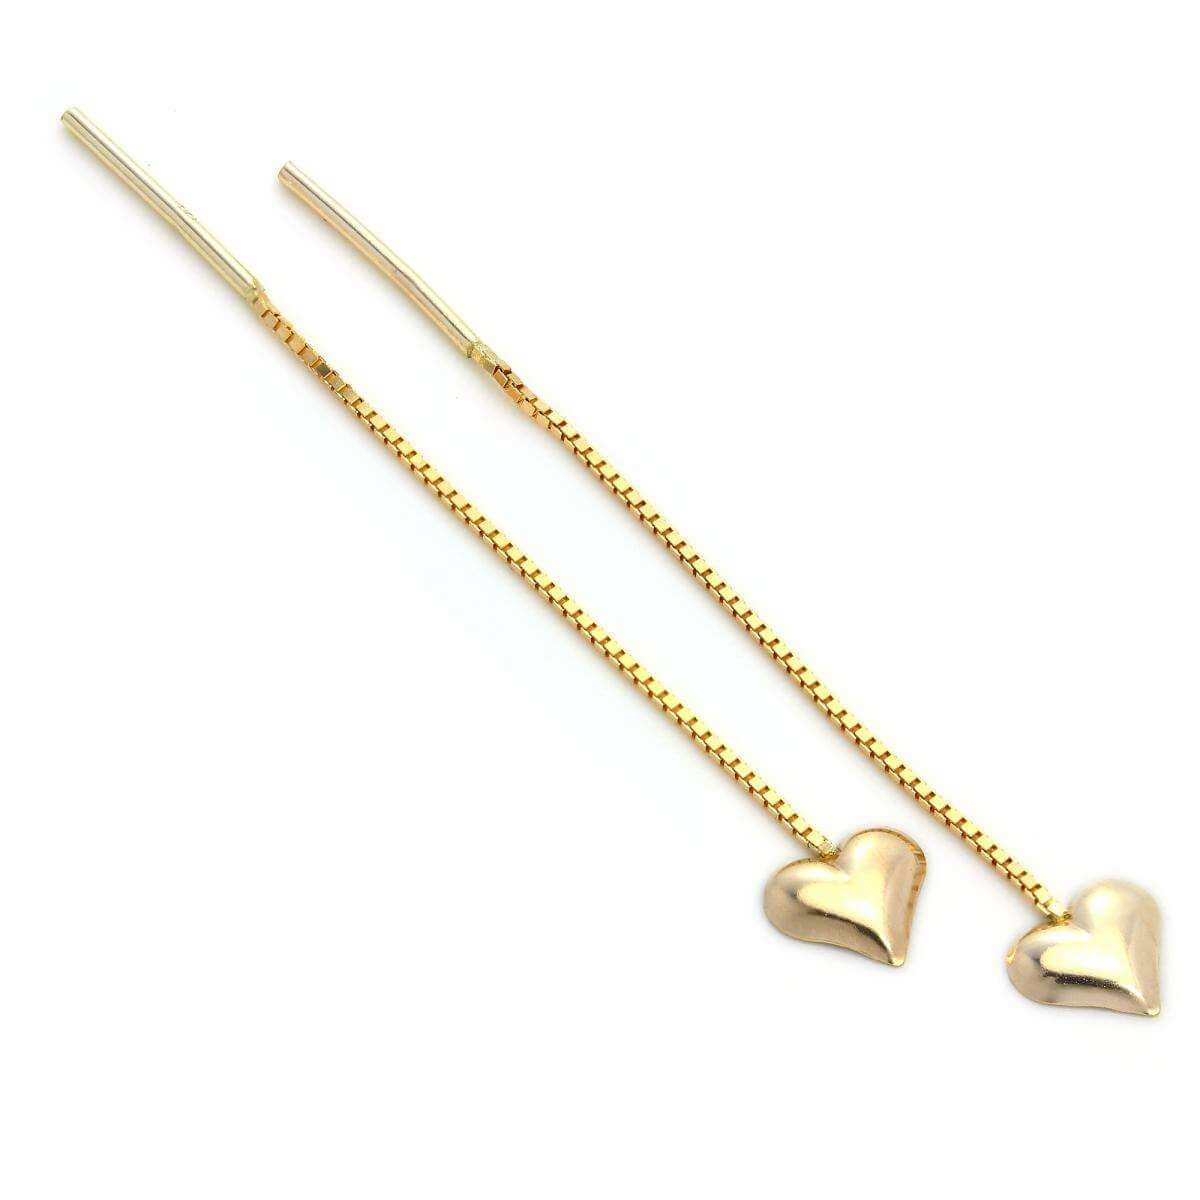 9ct Gold Heart Pull Through Threader Earrings